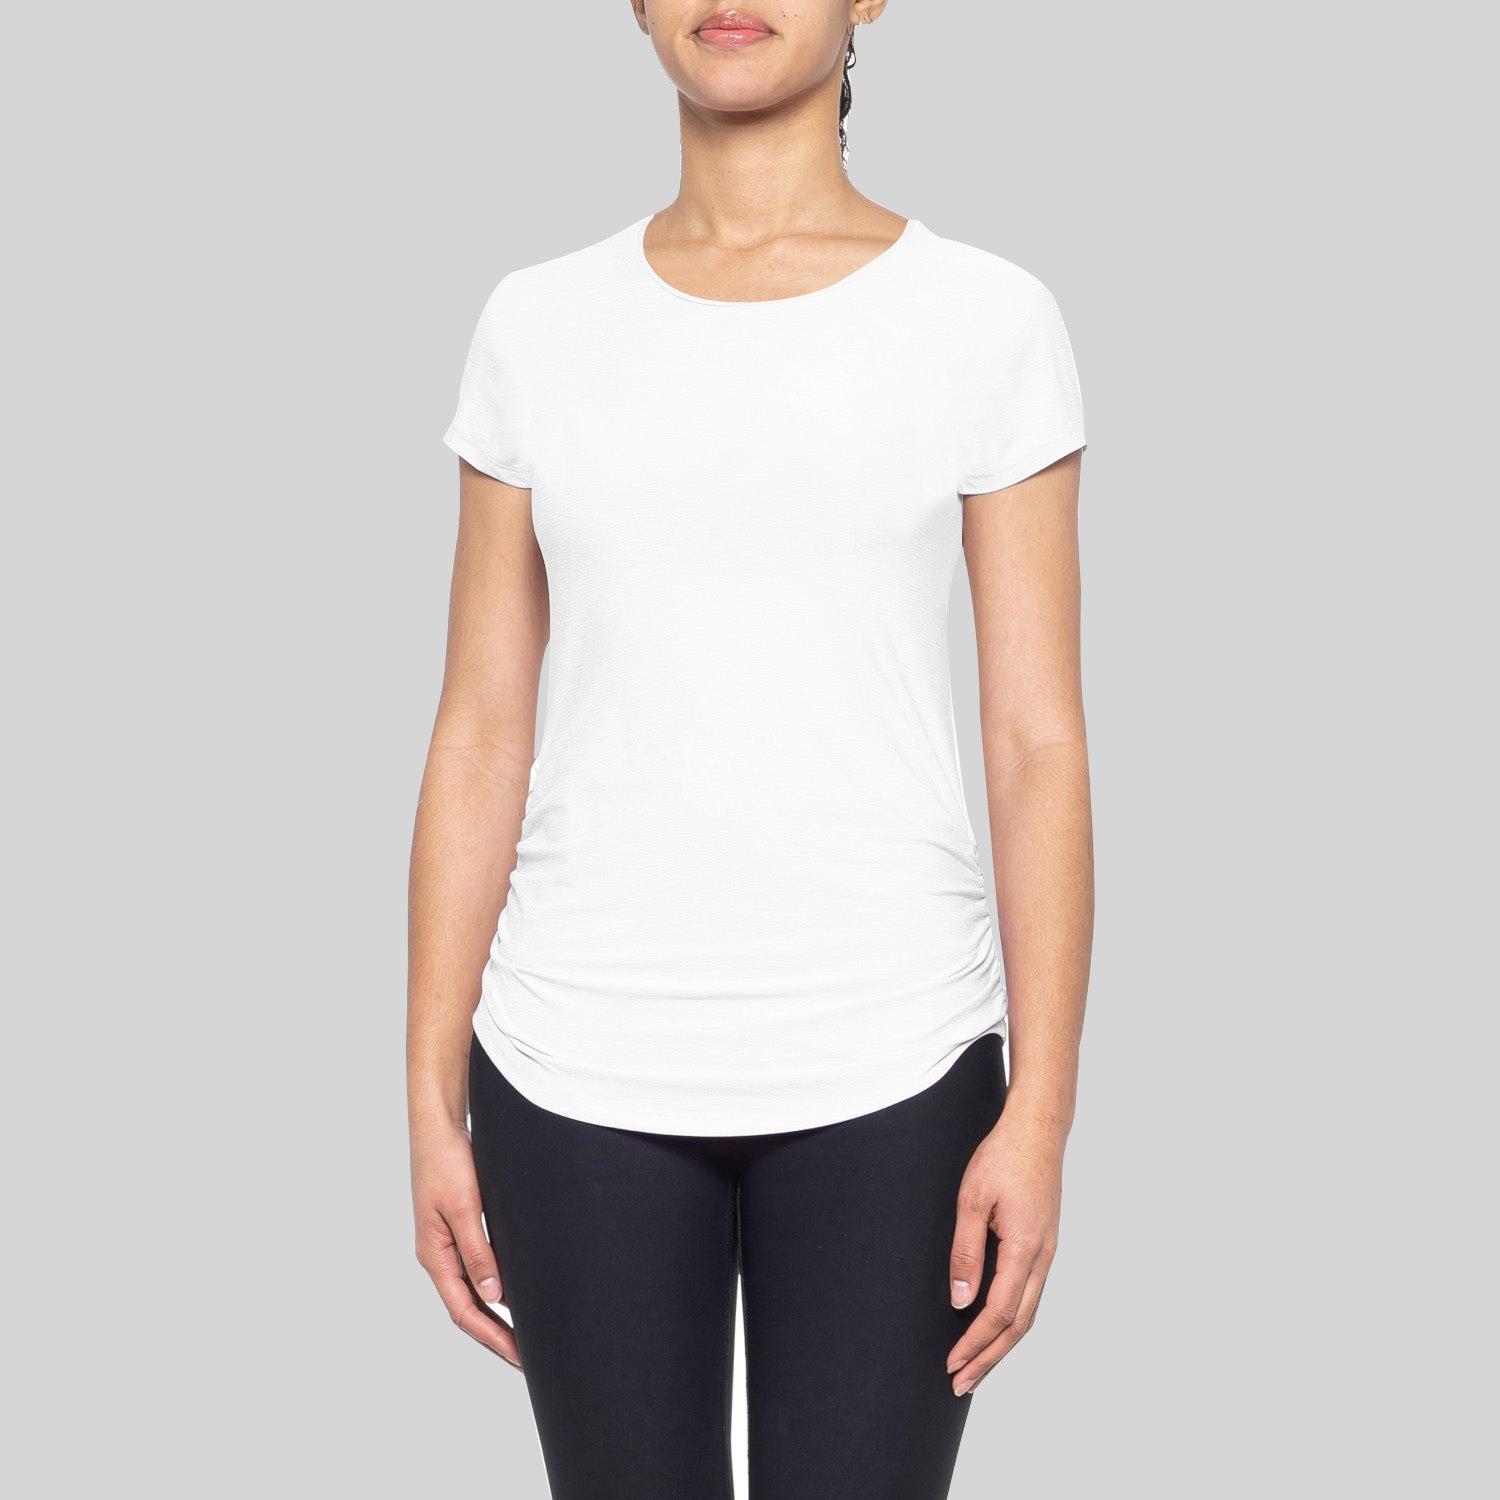 Miss Popular Sport Viscose Crew Neck Ruched Side Tee Shirt For Women-White-BE12177